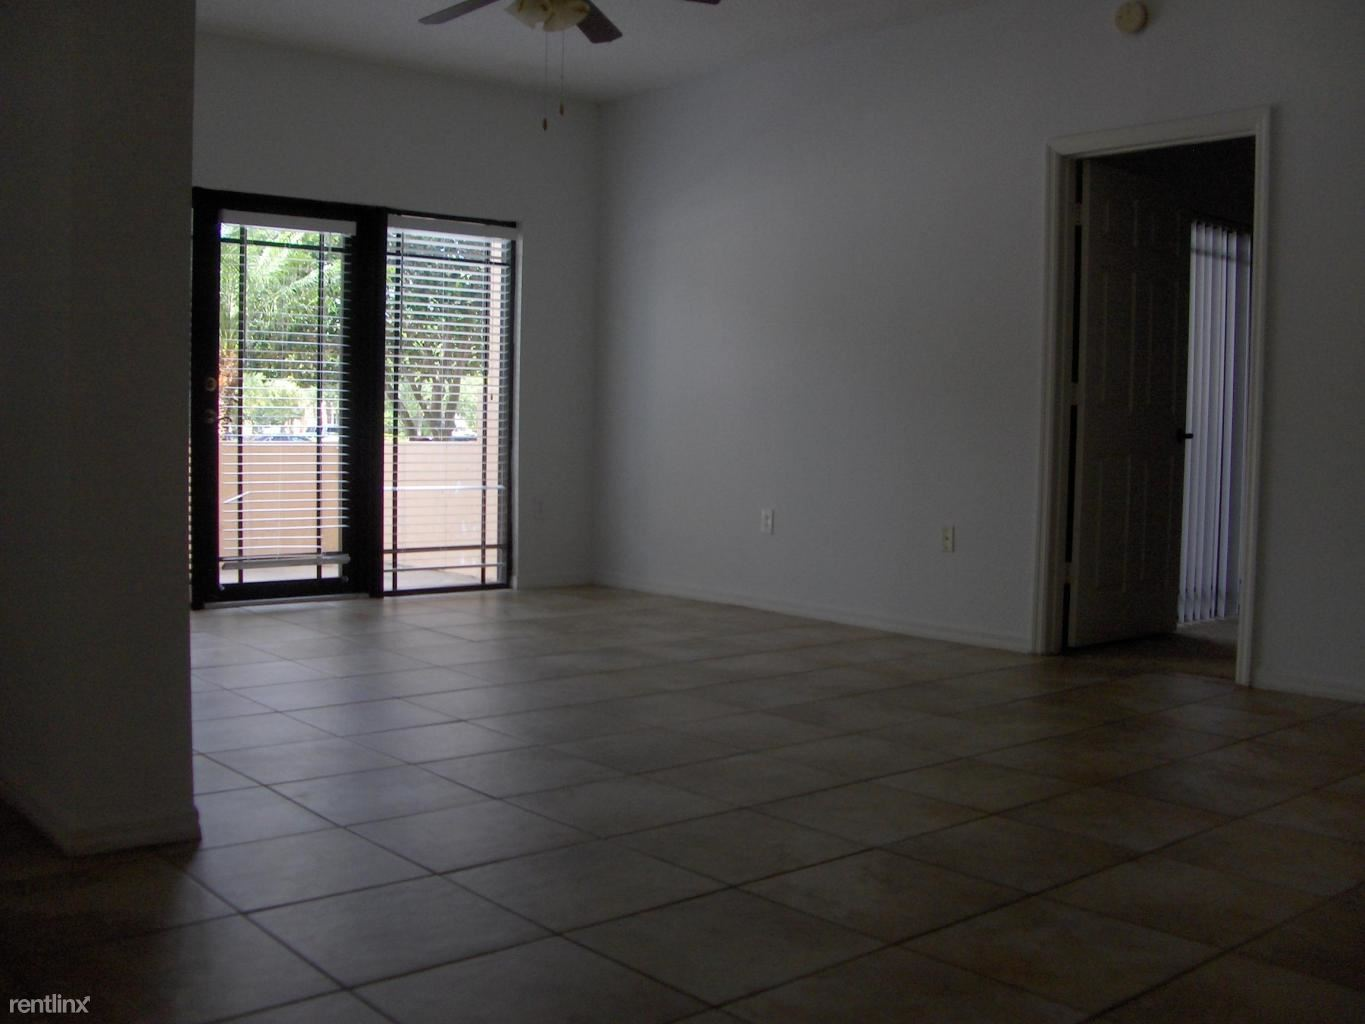 Condos for Rent in San Matera at the Gardens Palm Beach Gardens